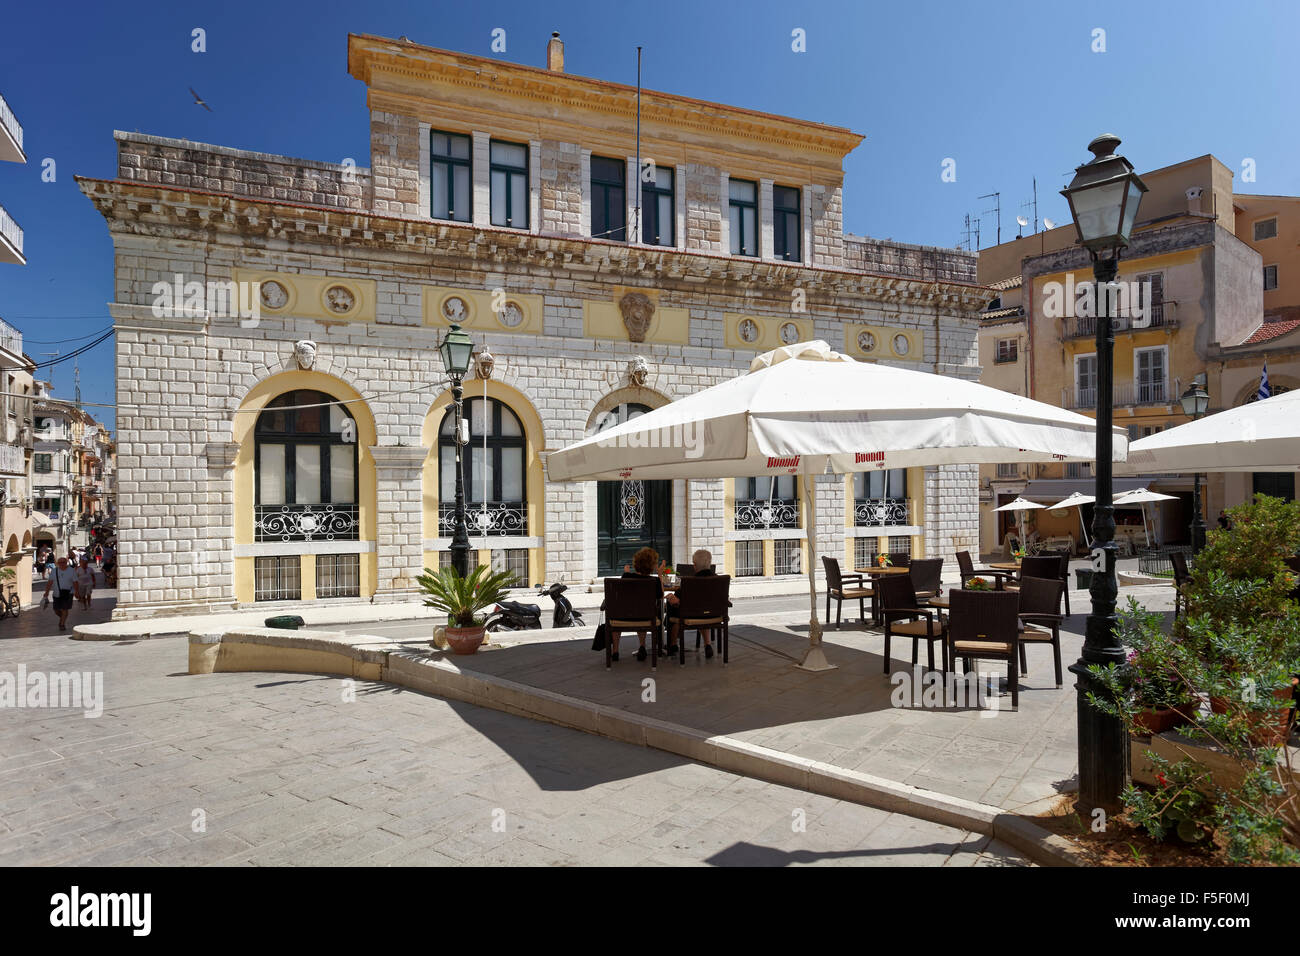 Town hall square with town hall or Dimarcheion at Platia Dimarchiou, Kerkyra historic centre, Corfu town - Stock Image